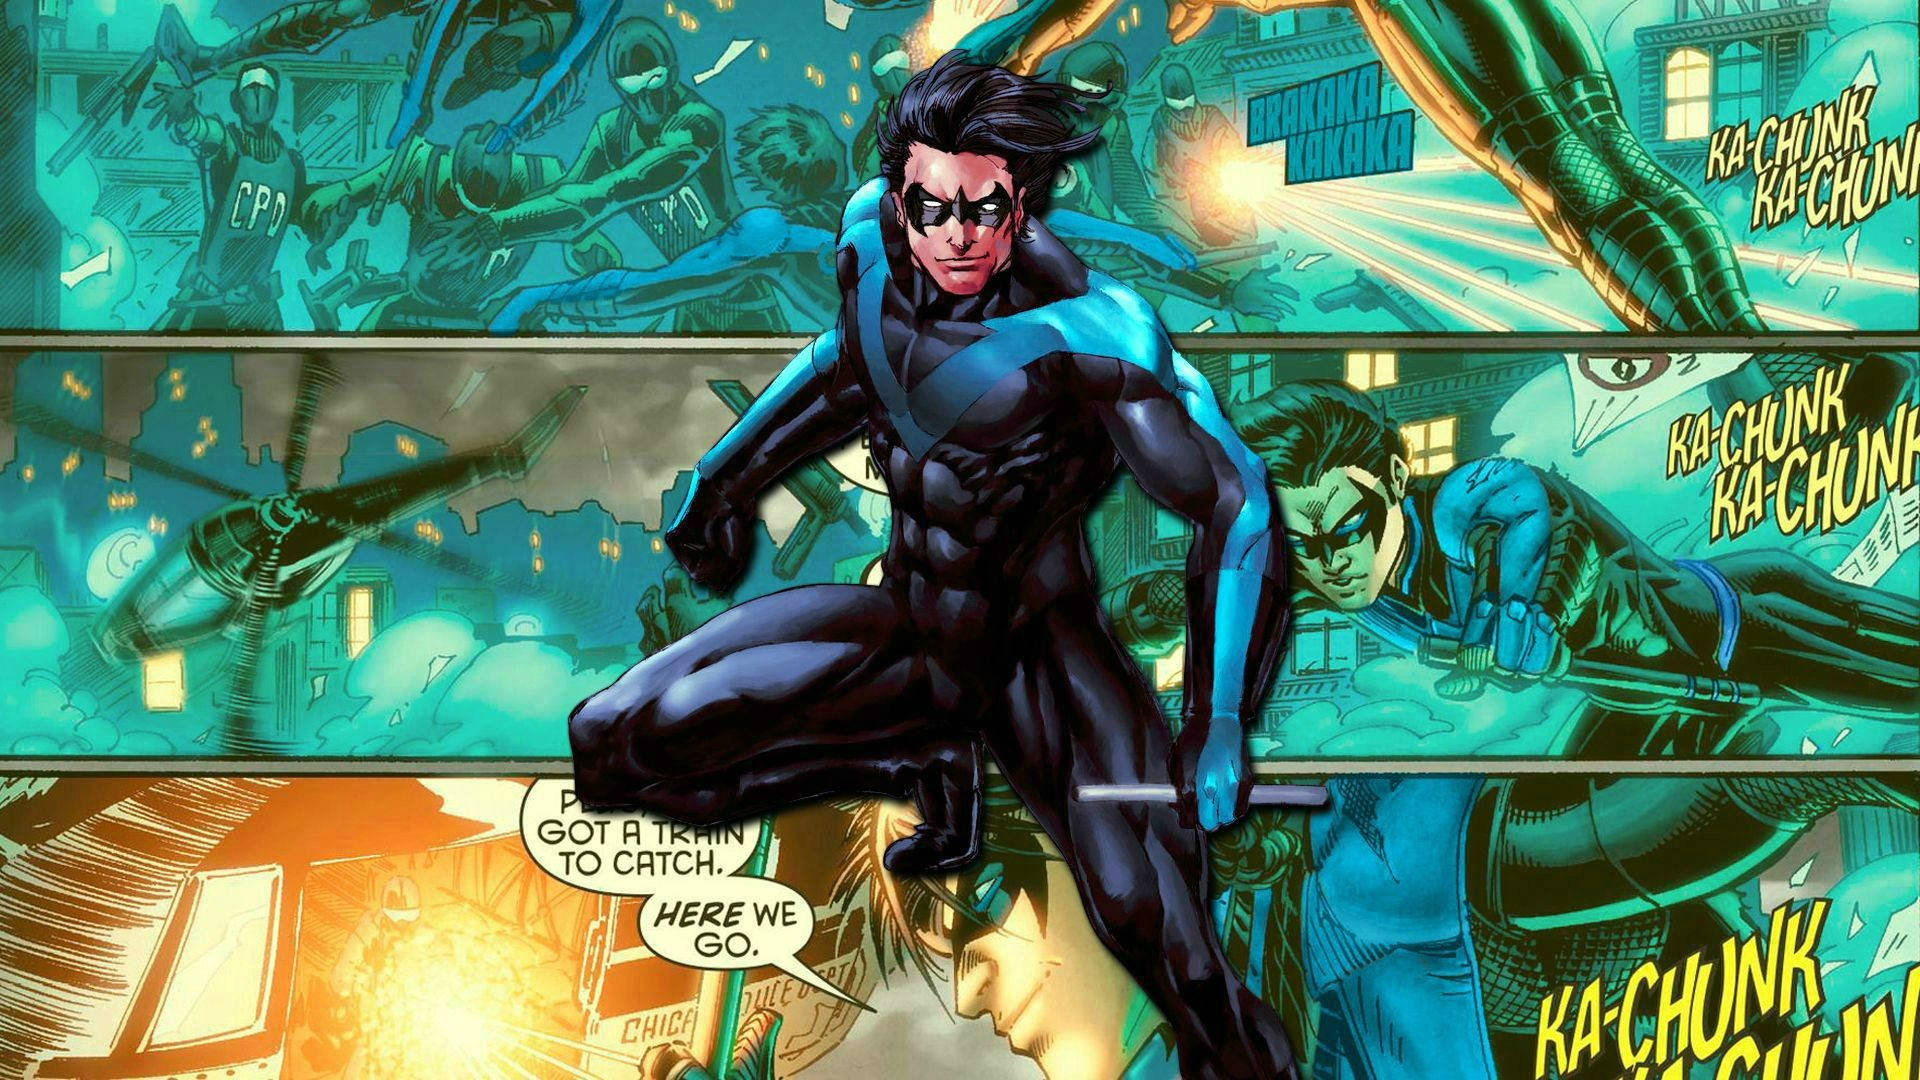 New Nightwing Wallpaper   HD Wallpapers   Pinterest   Wallpaper, Hd  wallpaper and deviantART